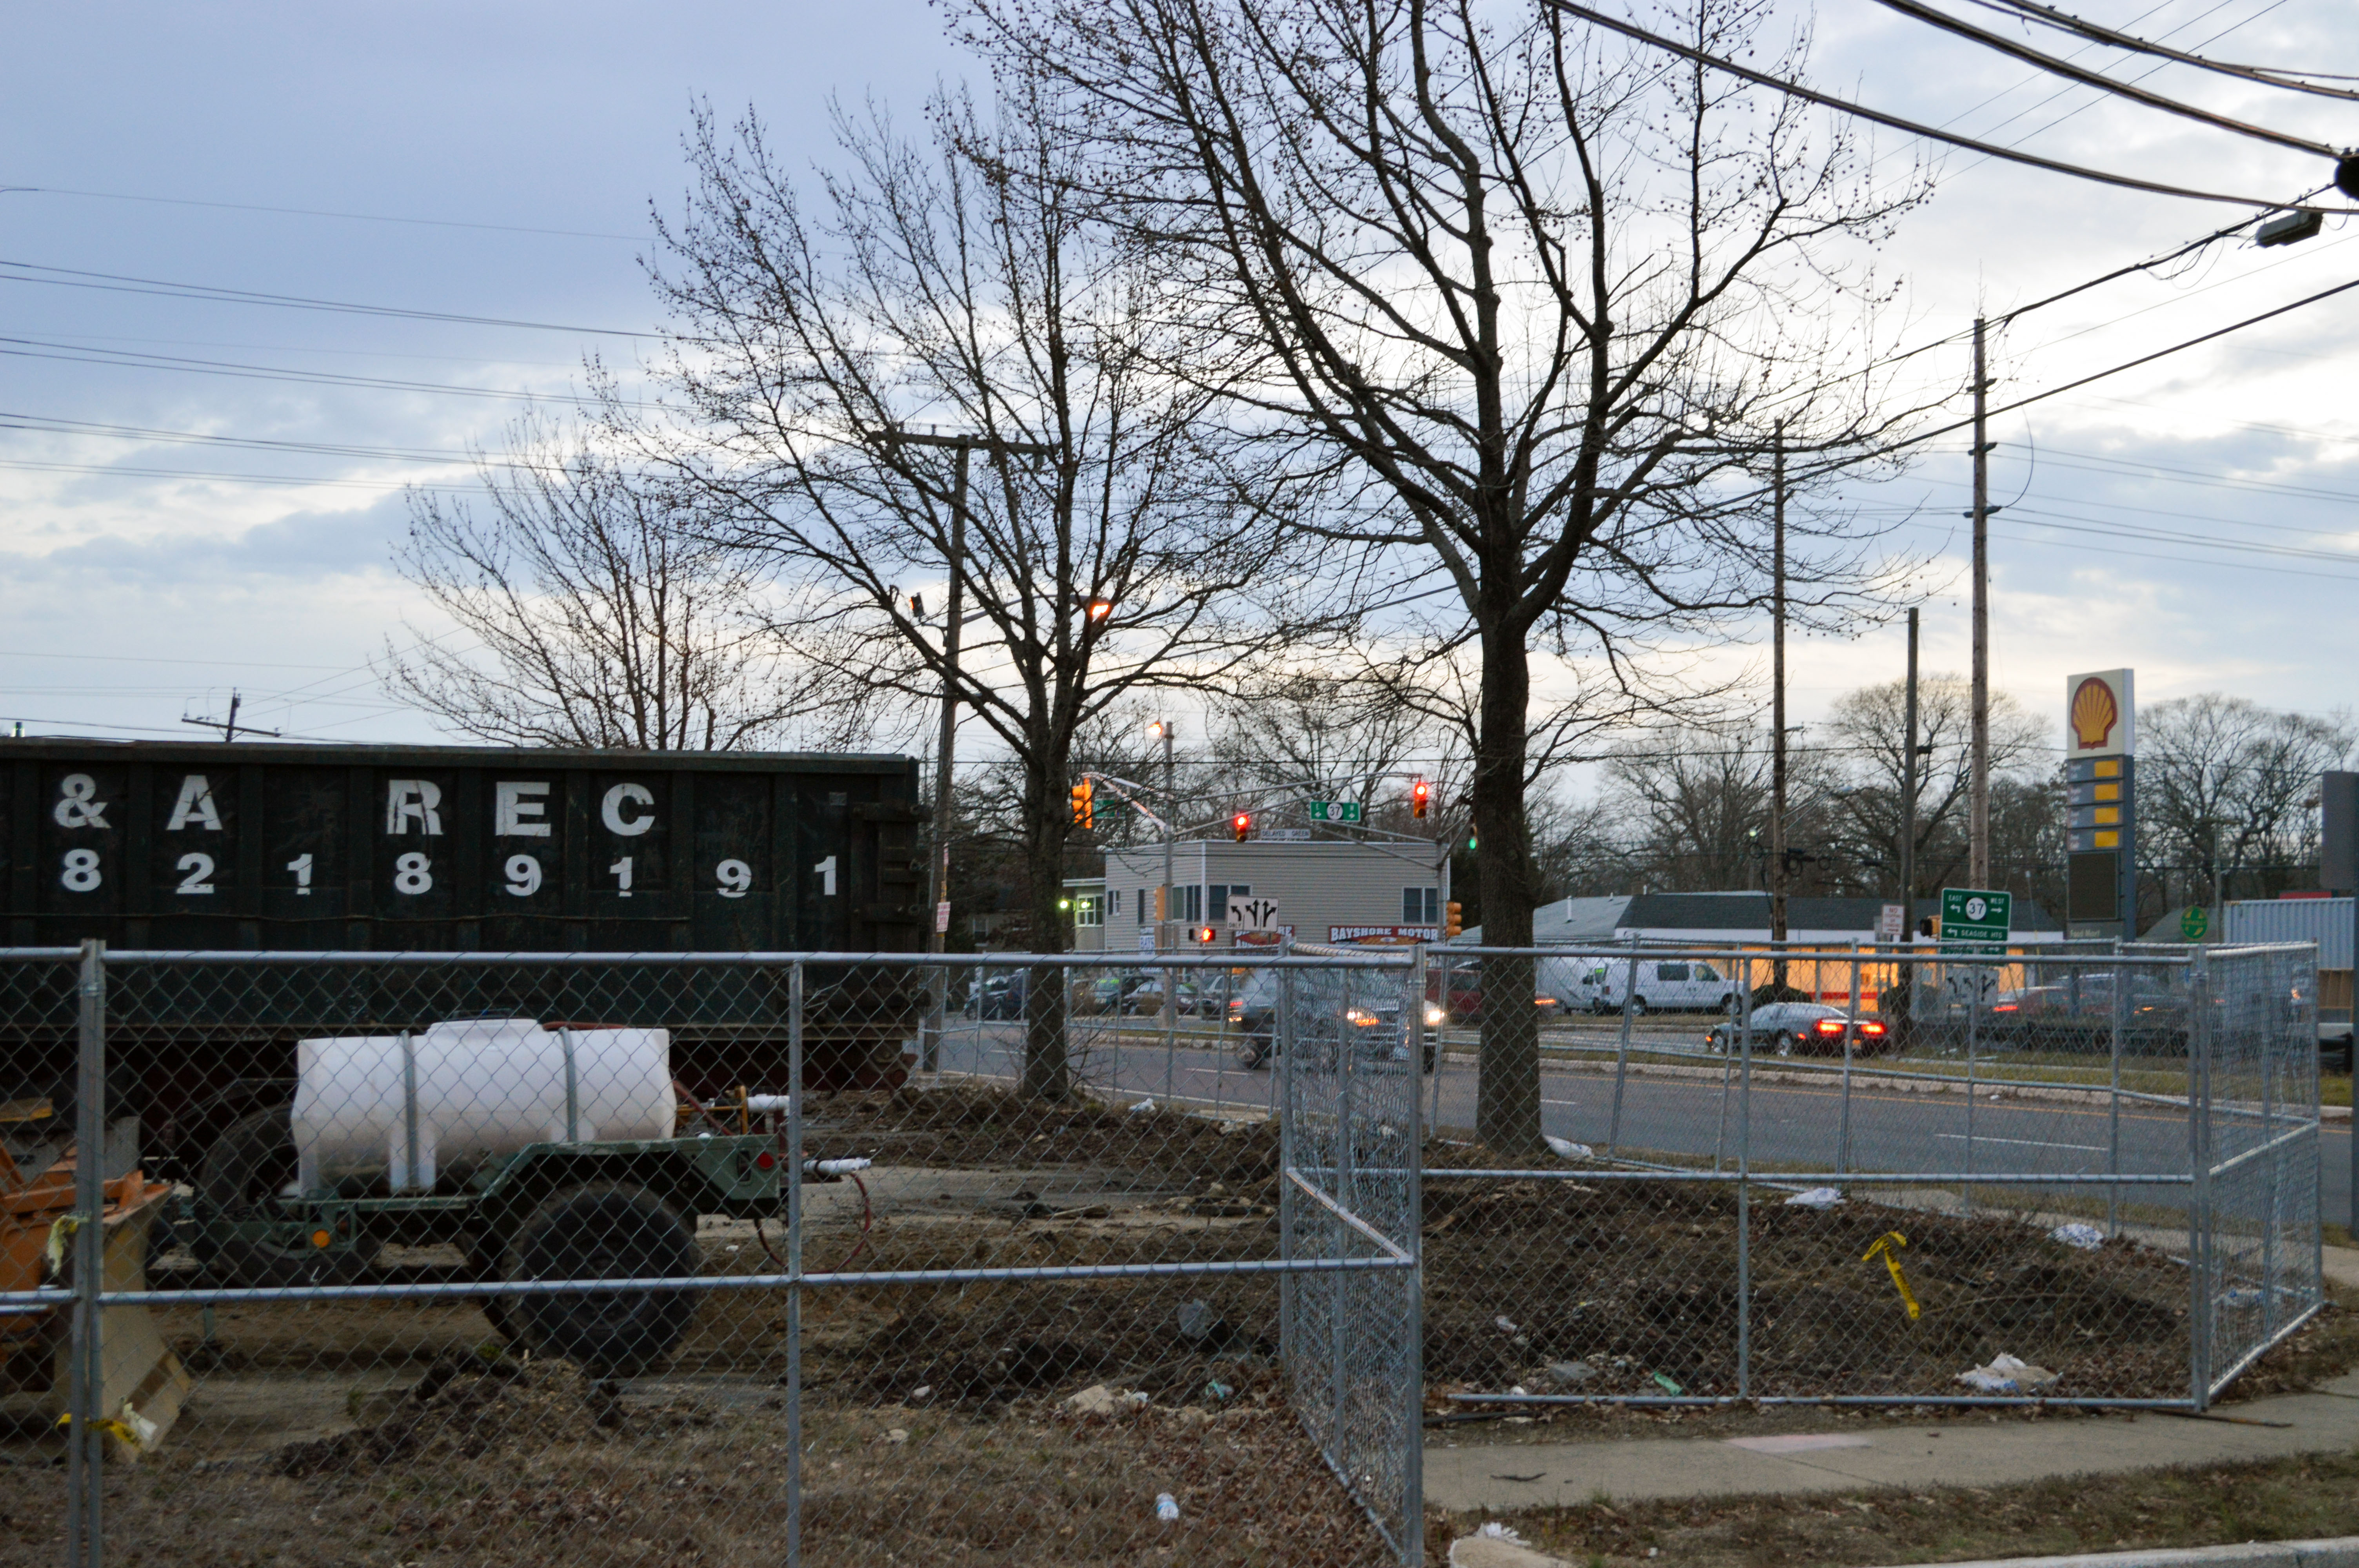 The site where a QuickChek convenience store and gas station is planned at Fischer Blvd. and Route 37, Toms River. (Photo: Daniel Nee)